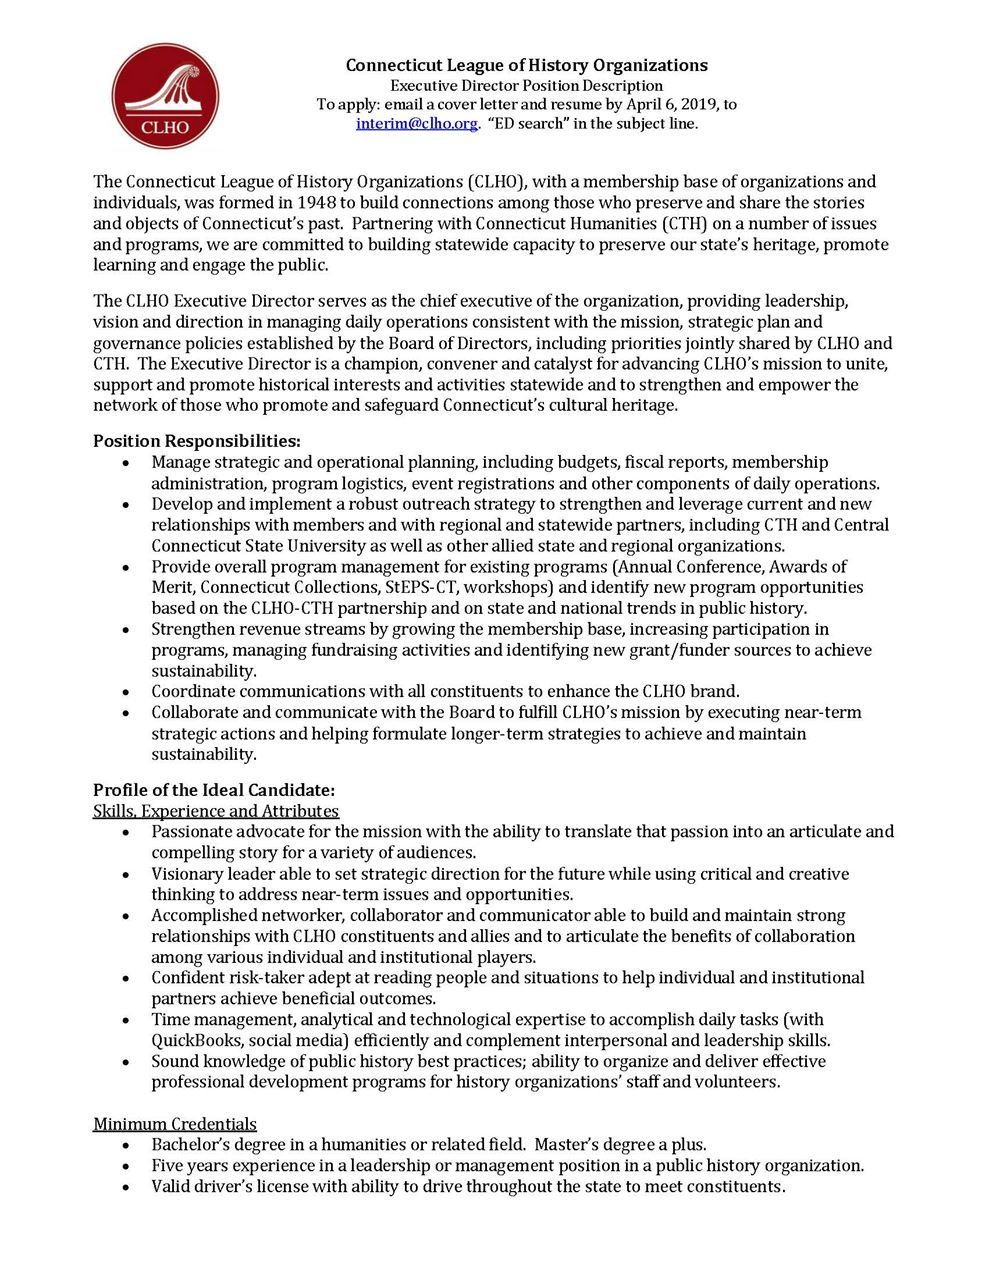 Connecticut League of History Organizations - Employment